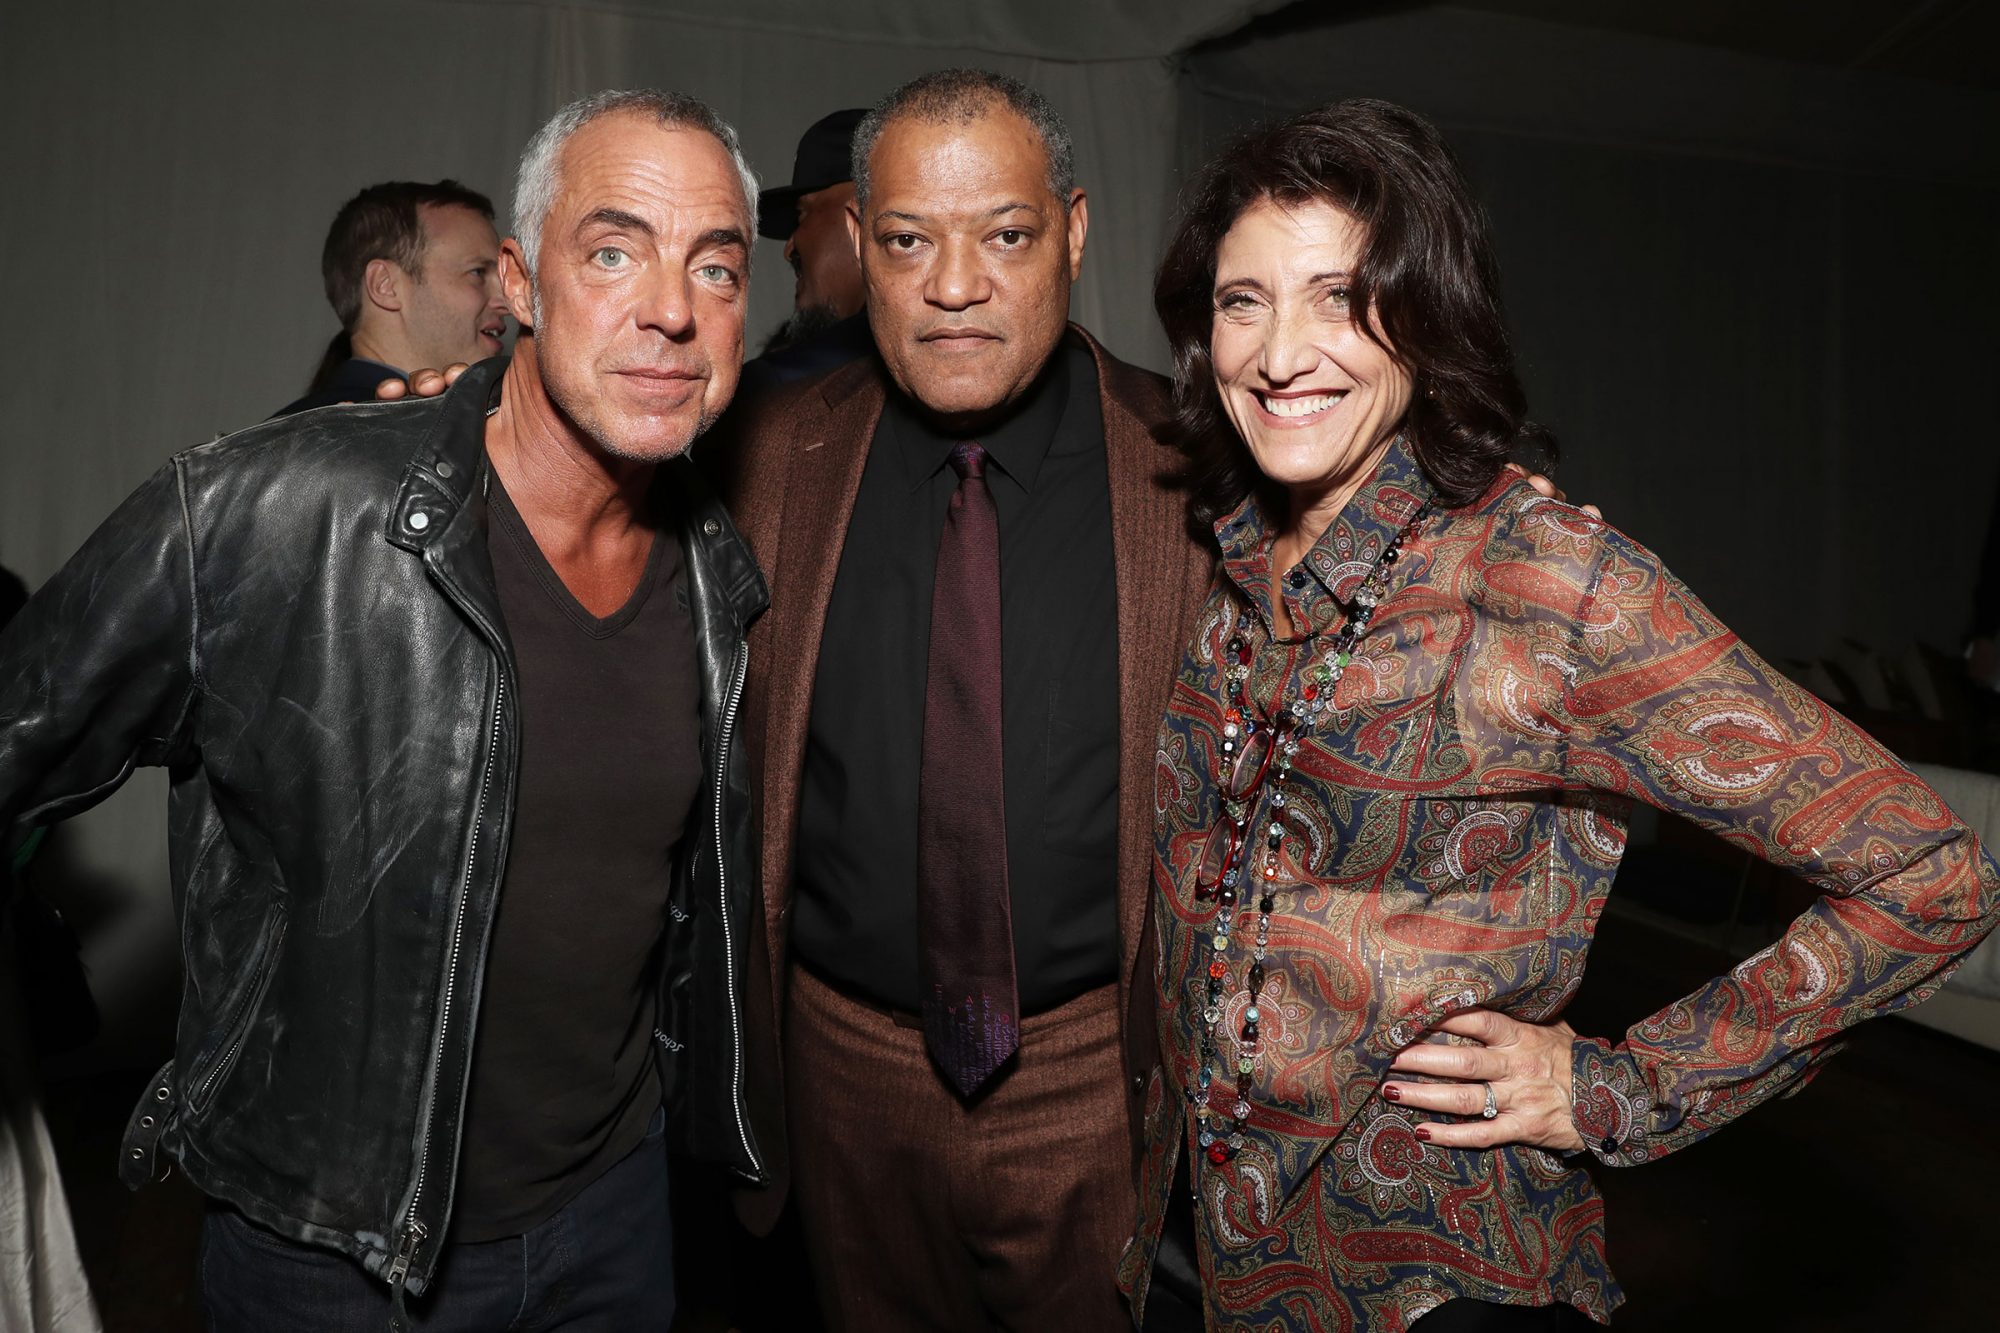 Titus Welliver, Laurence Fishburne, Amy Aquino Amazon Studios Holiday Party, Los Angeles, USA - 07 Dec 2019